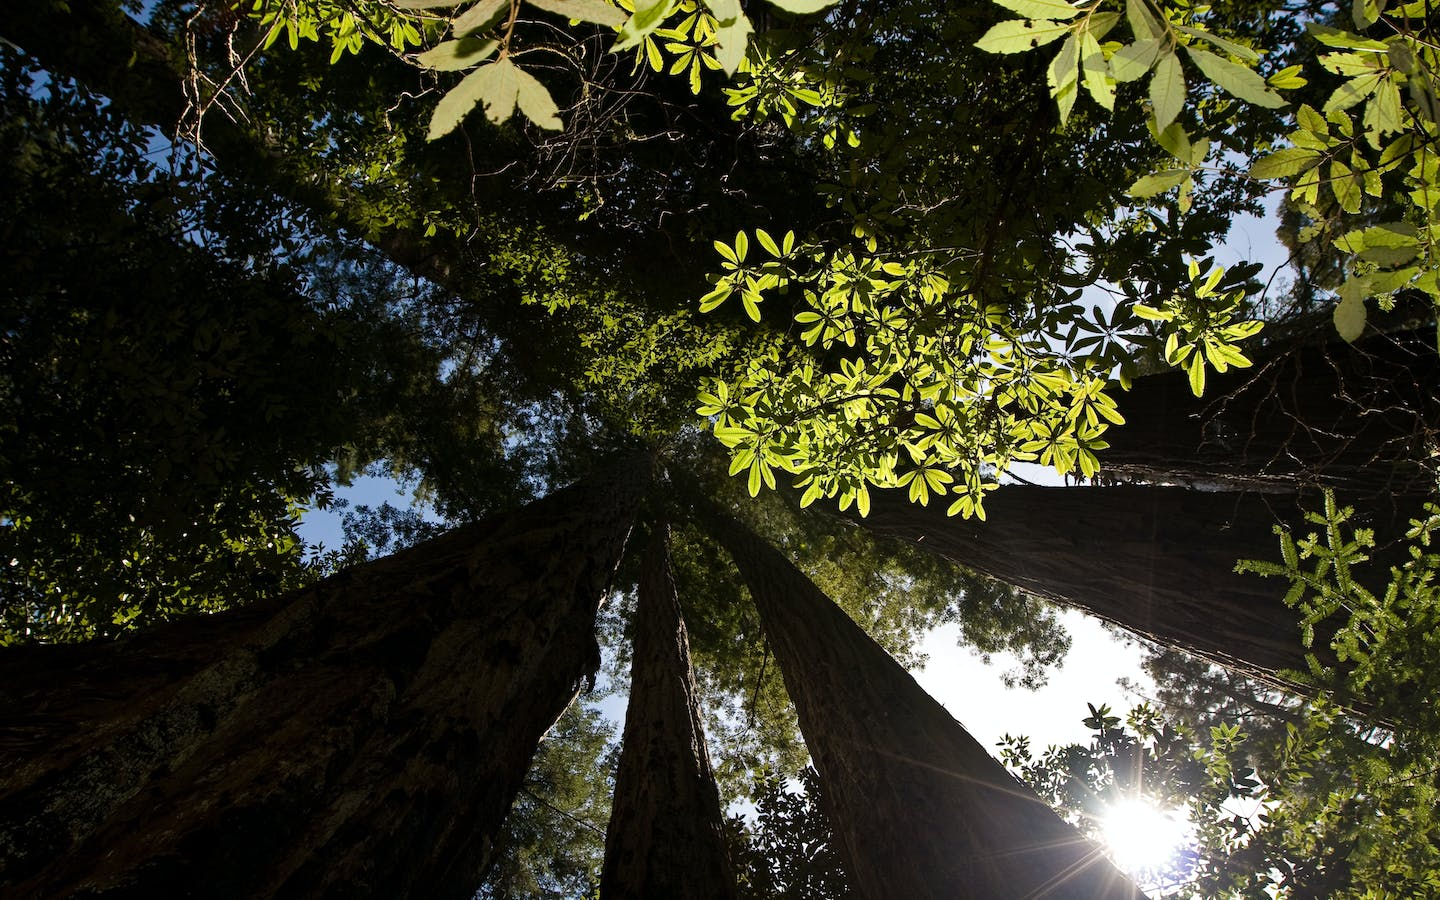 Forest canopy of Redwoods and Douglas firs in afternoon light